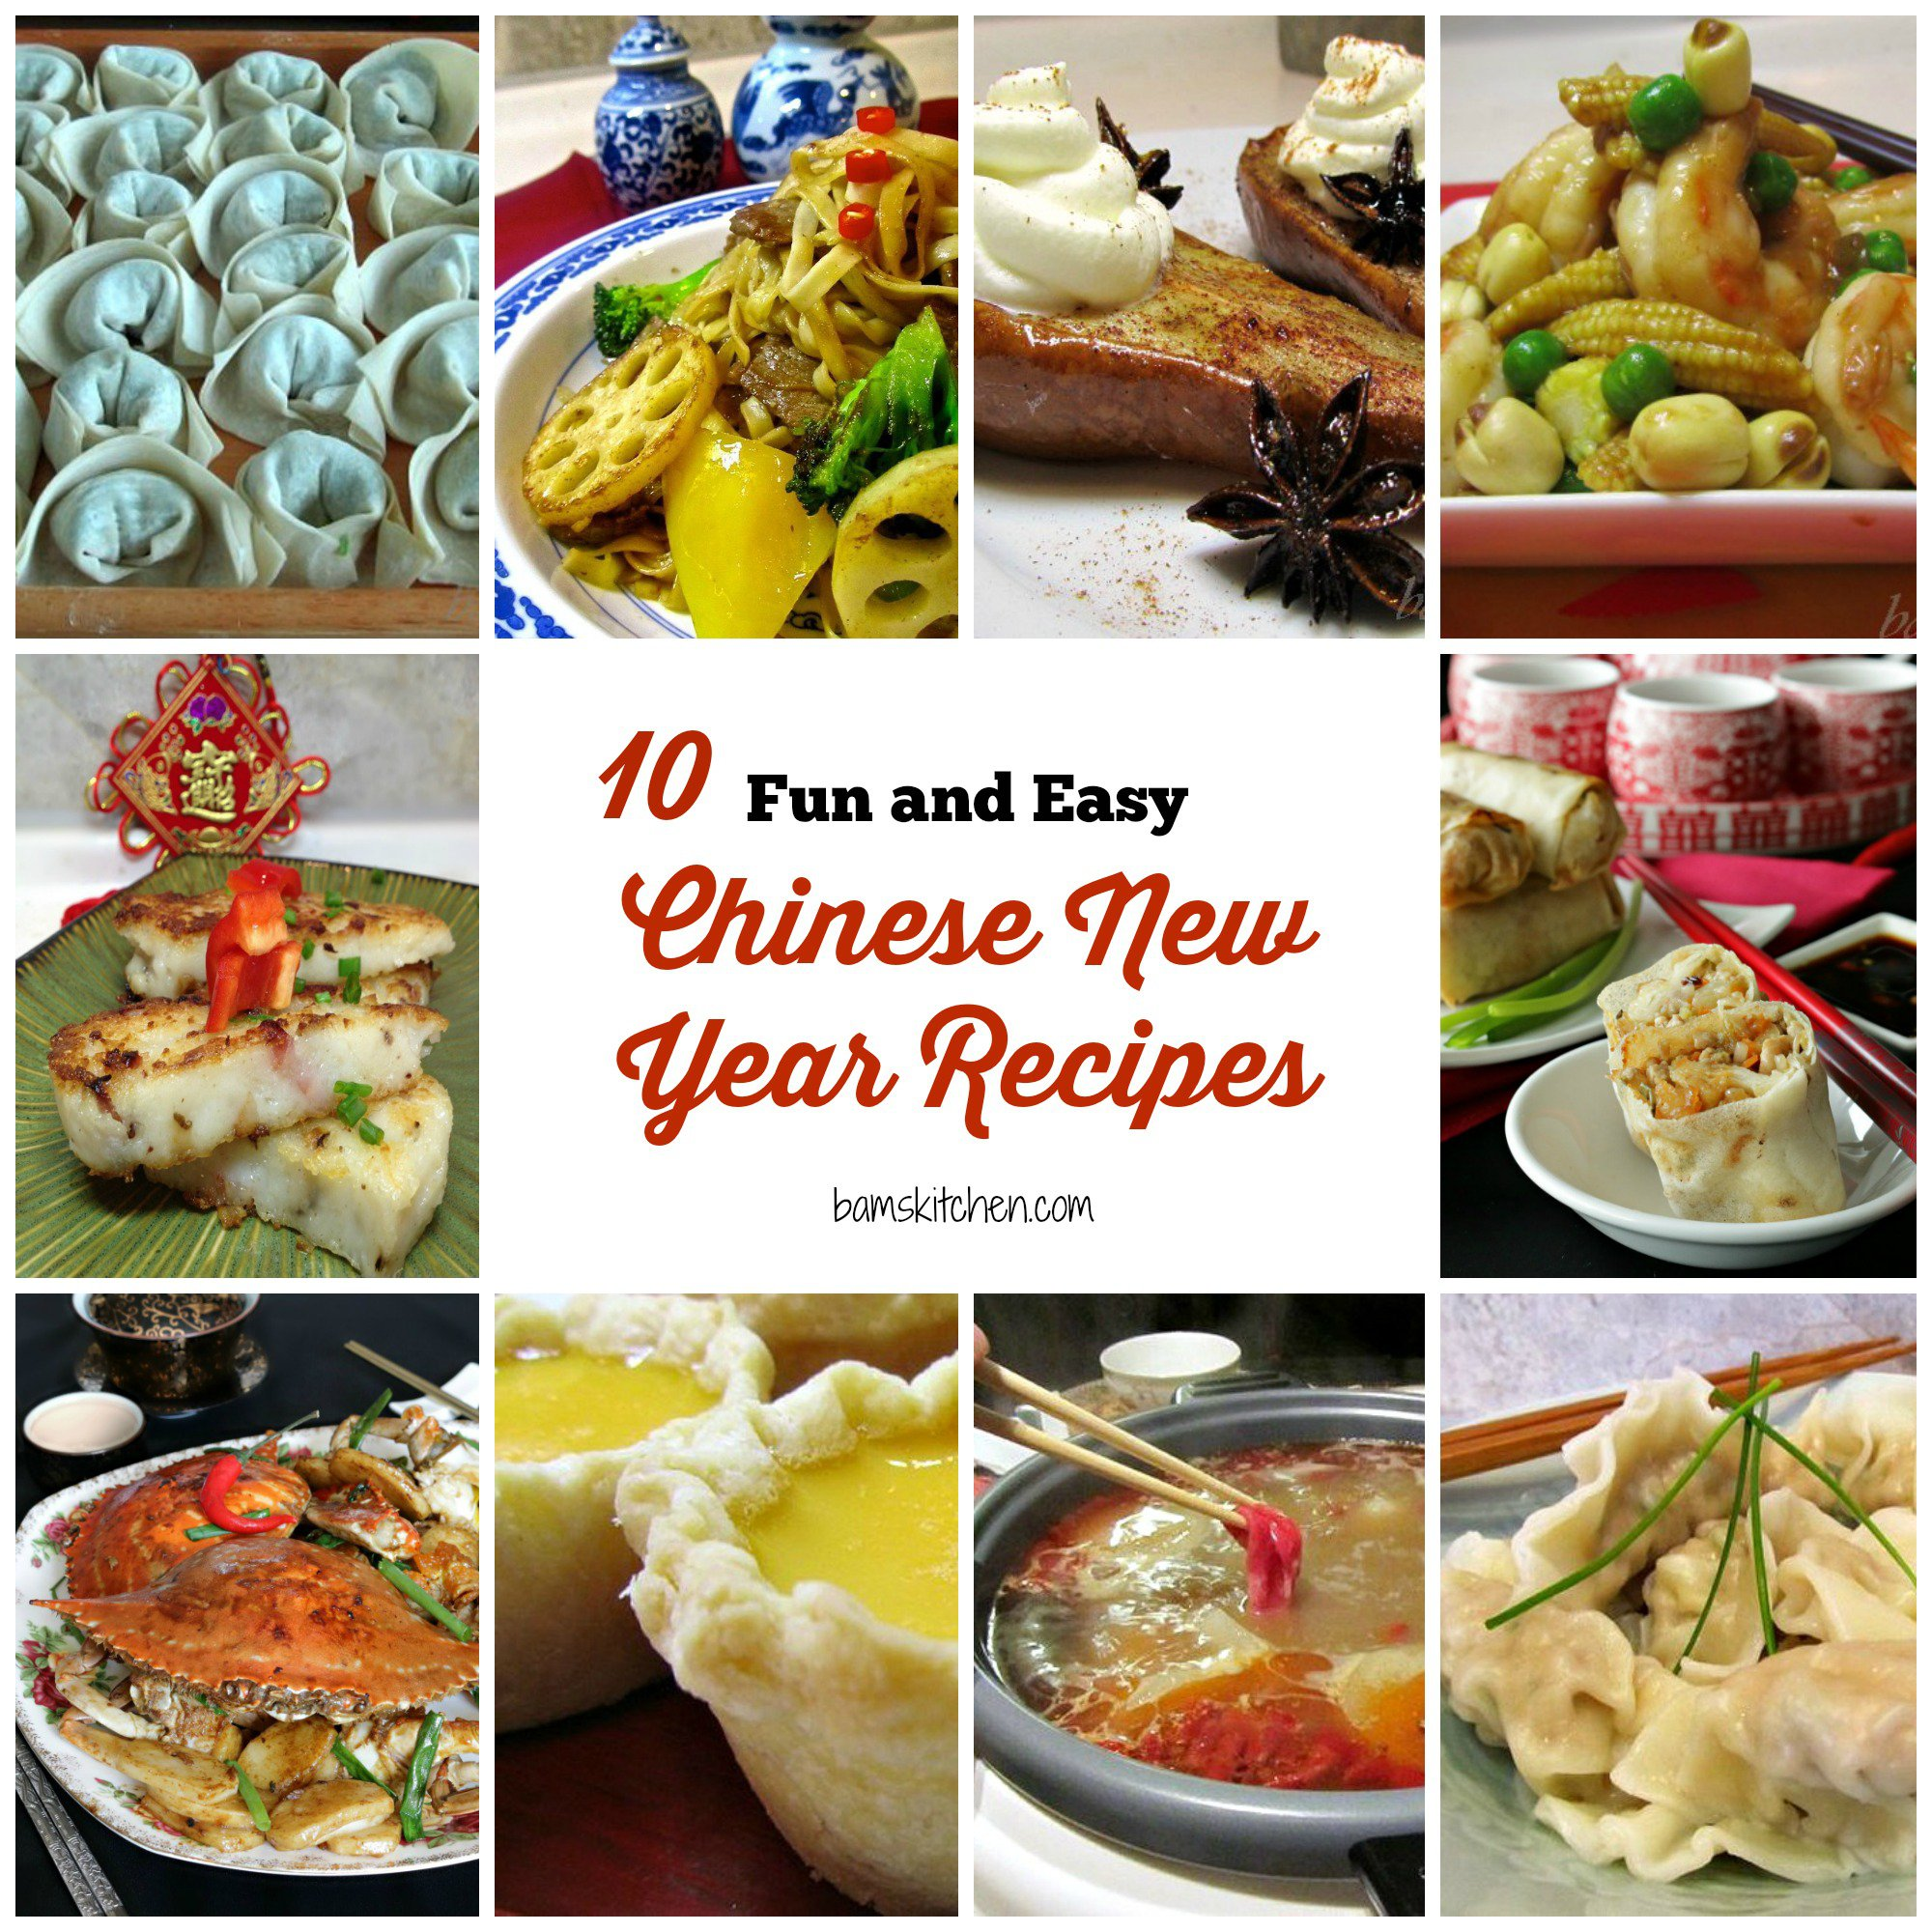 10 fun and easy chinese new year recipes healthy world cuisine 10 fun and easy chinese new year recipes bams kitchen forumfinder Choice Image